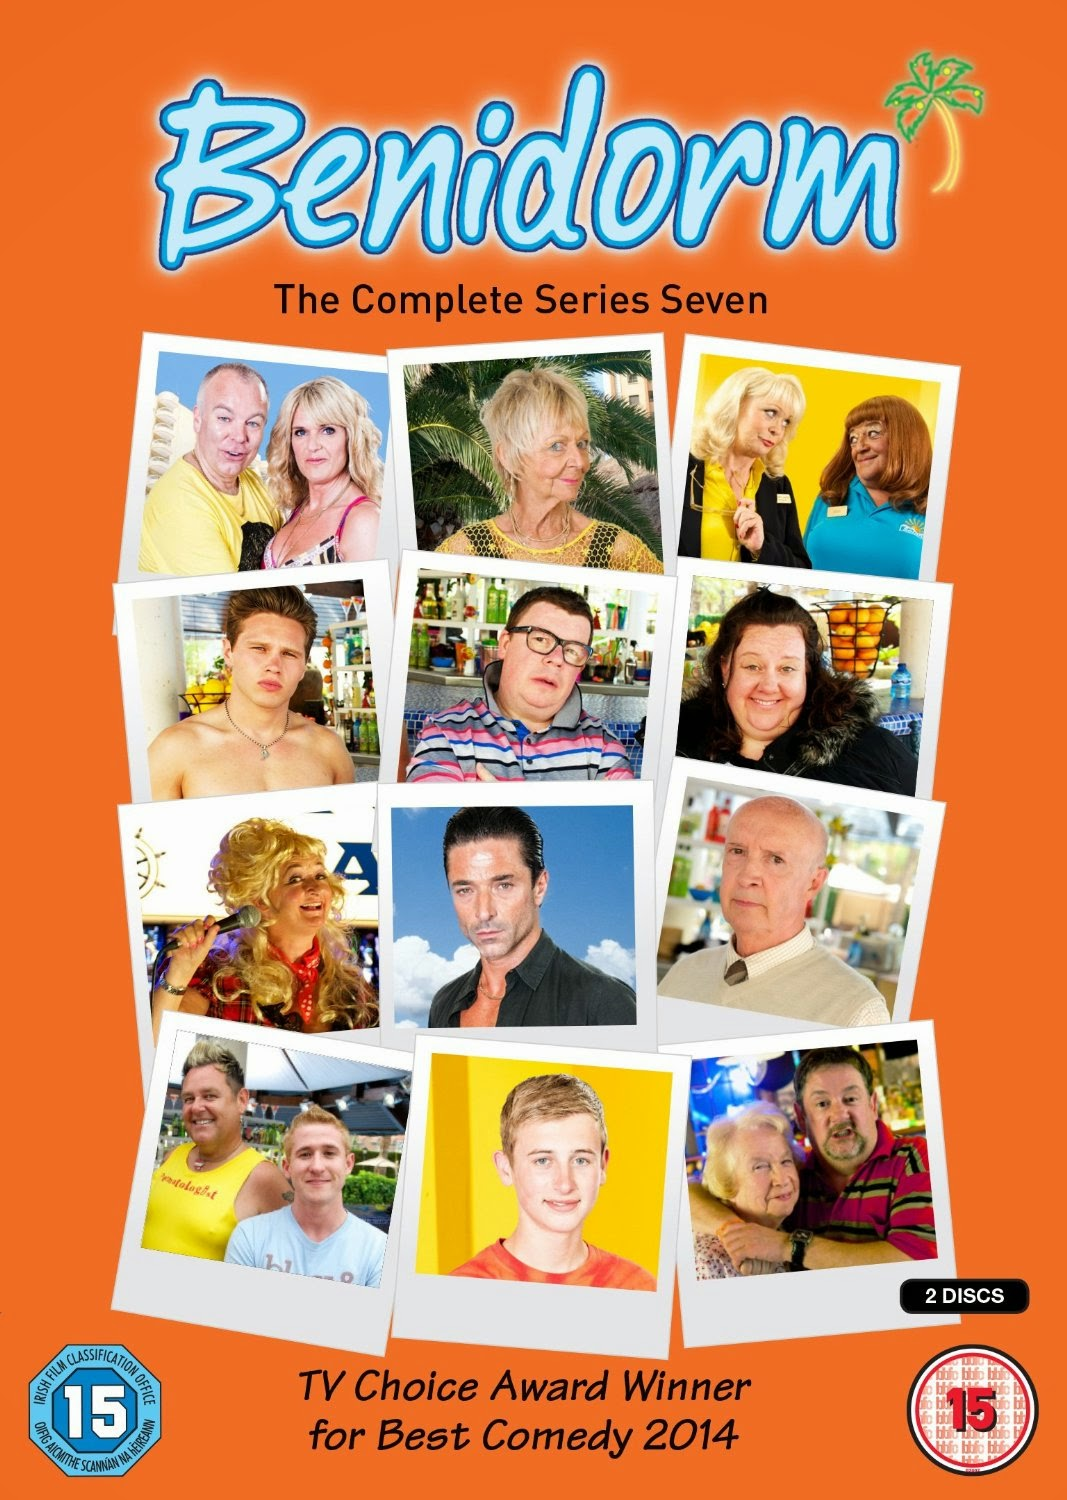 BENIDORN SEASON 7 ON DVD  FEBRUARY 23RD 2015